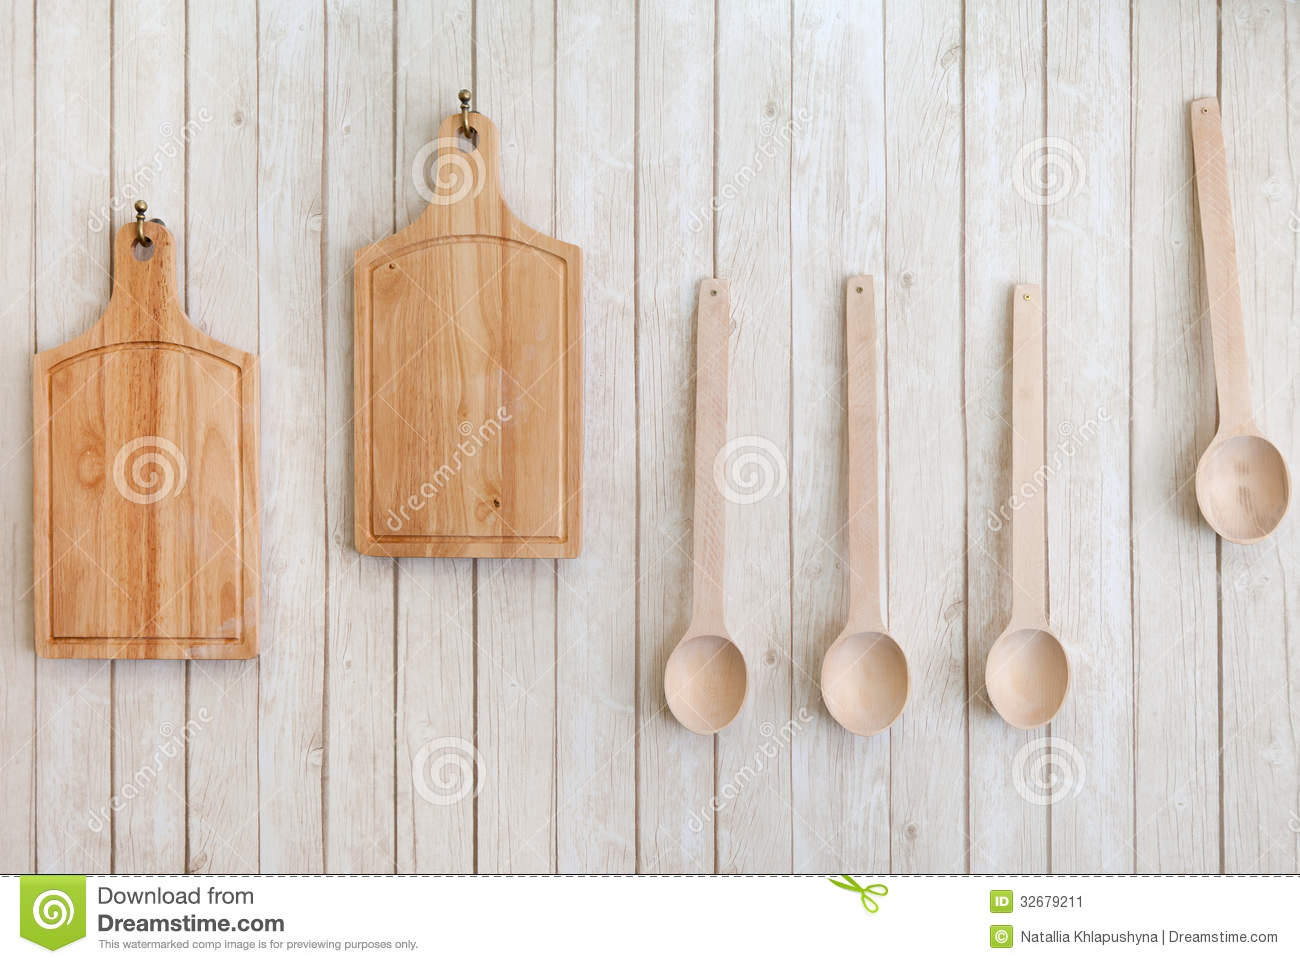 Cutting Boards And Wooden Spoons Hanging On The Wall Stock Image Image Of Spoons Utensil 32679211